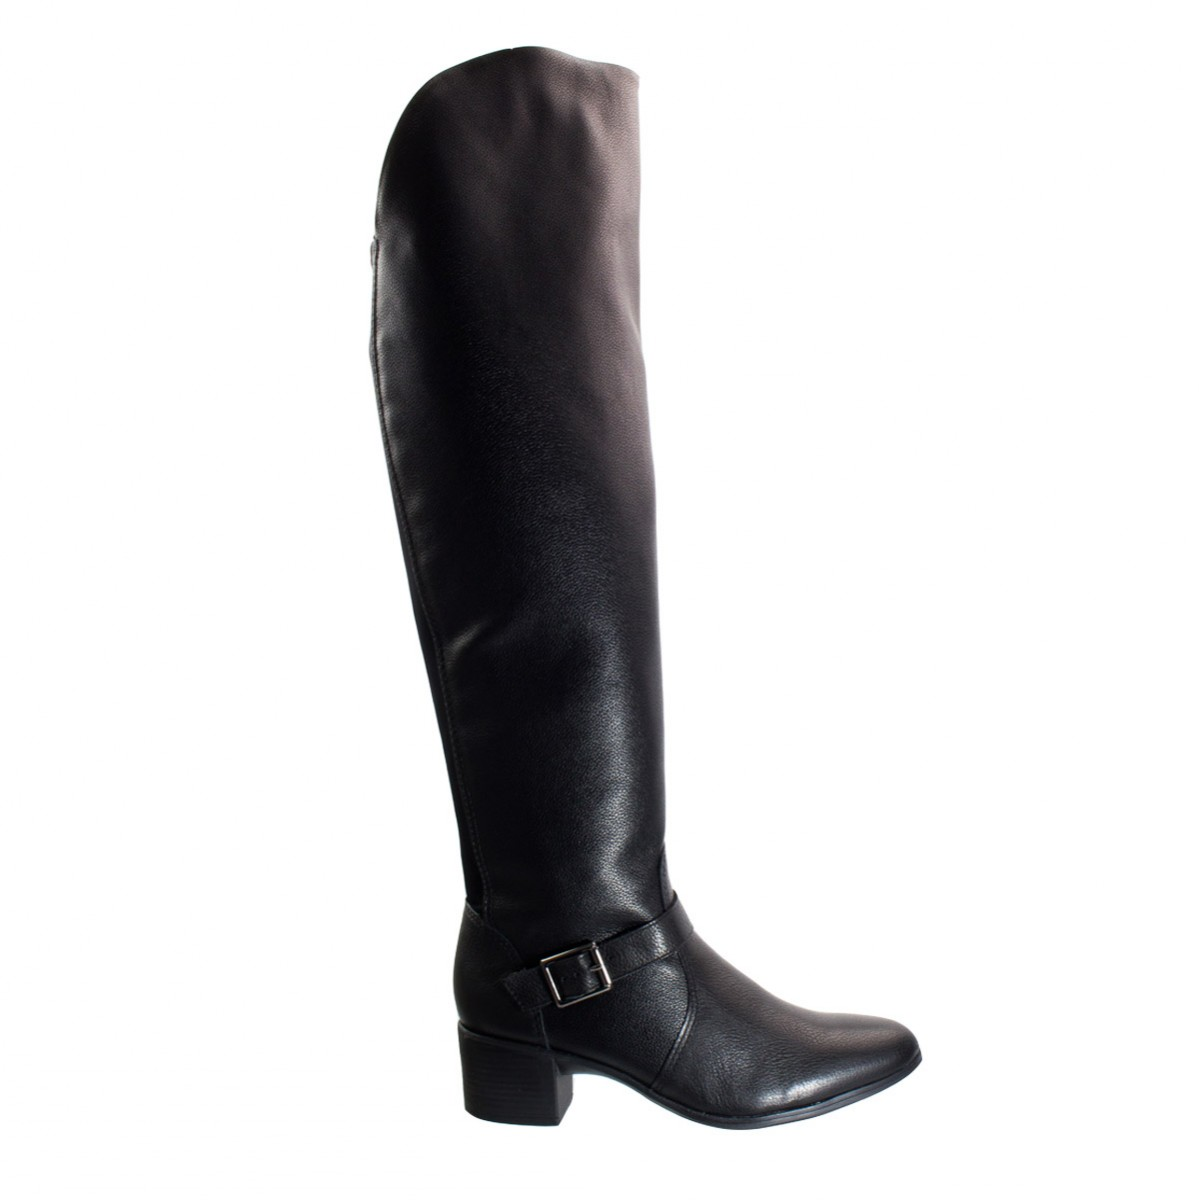 d37772268 Bizz Store - Bota Over The Knee Bottero Botwindsor Preta